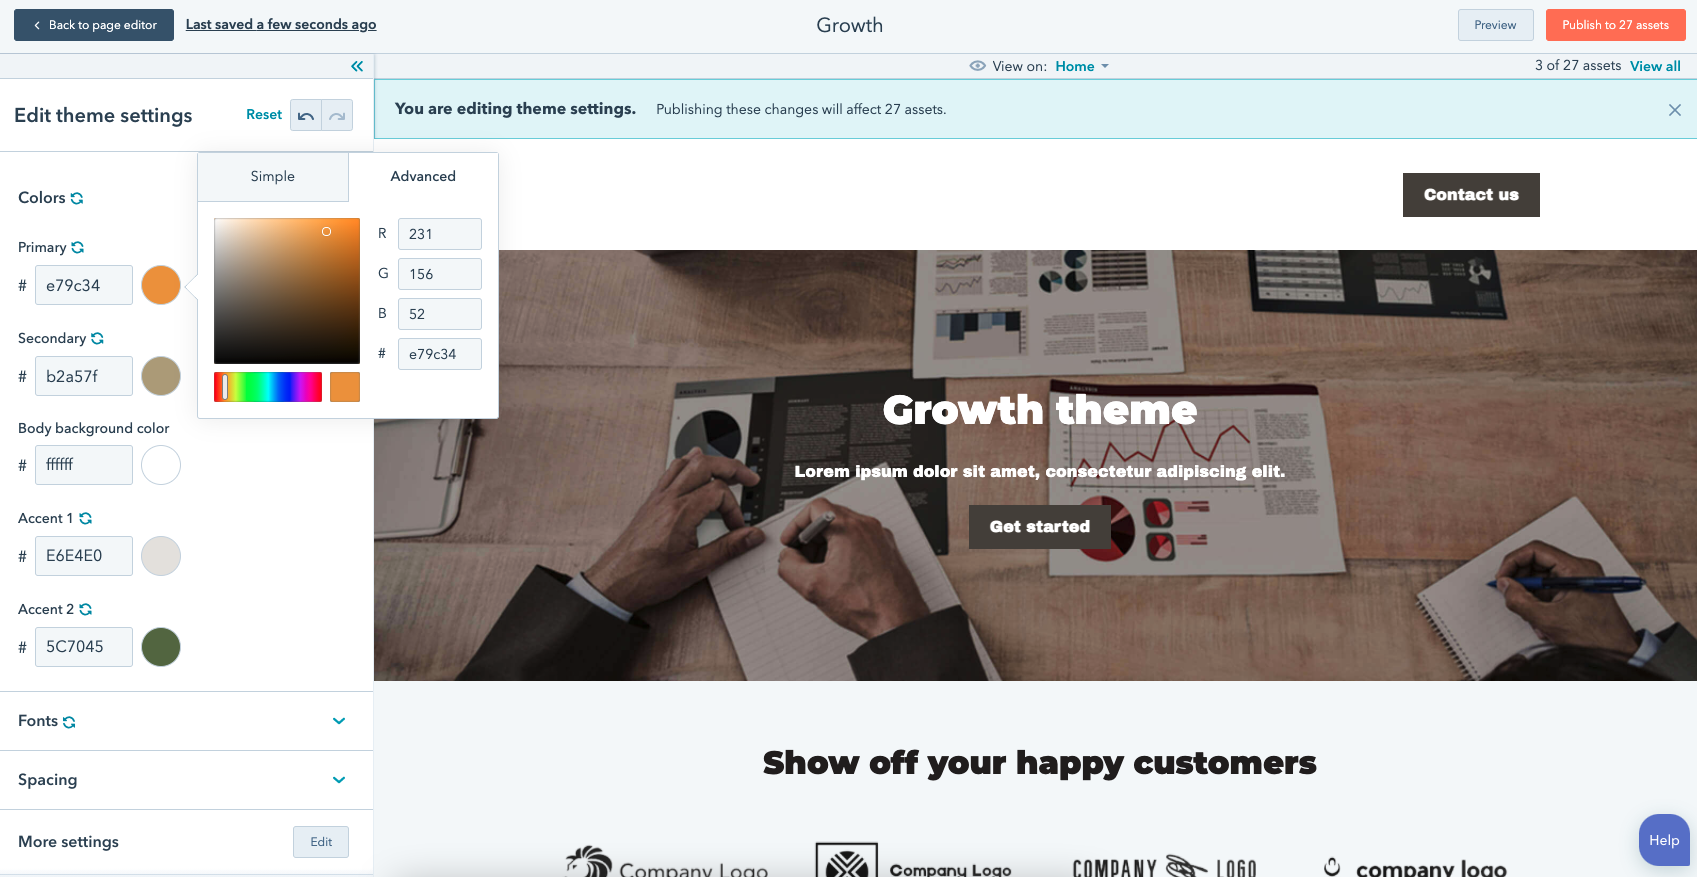 HubSpot Announces the Launch of CMS Hub Starter to Help Growing Companies Build CRM-Powered Websites